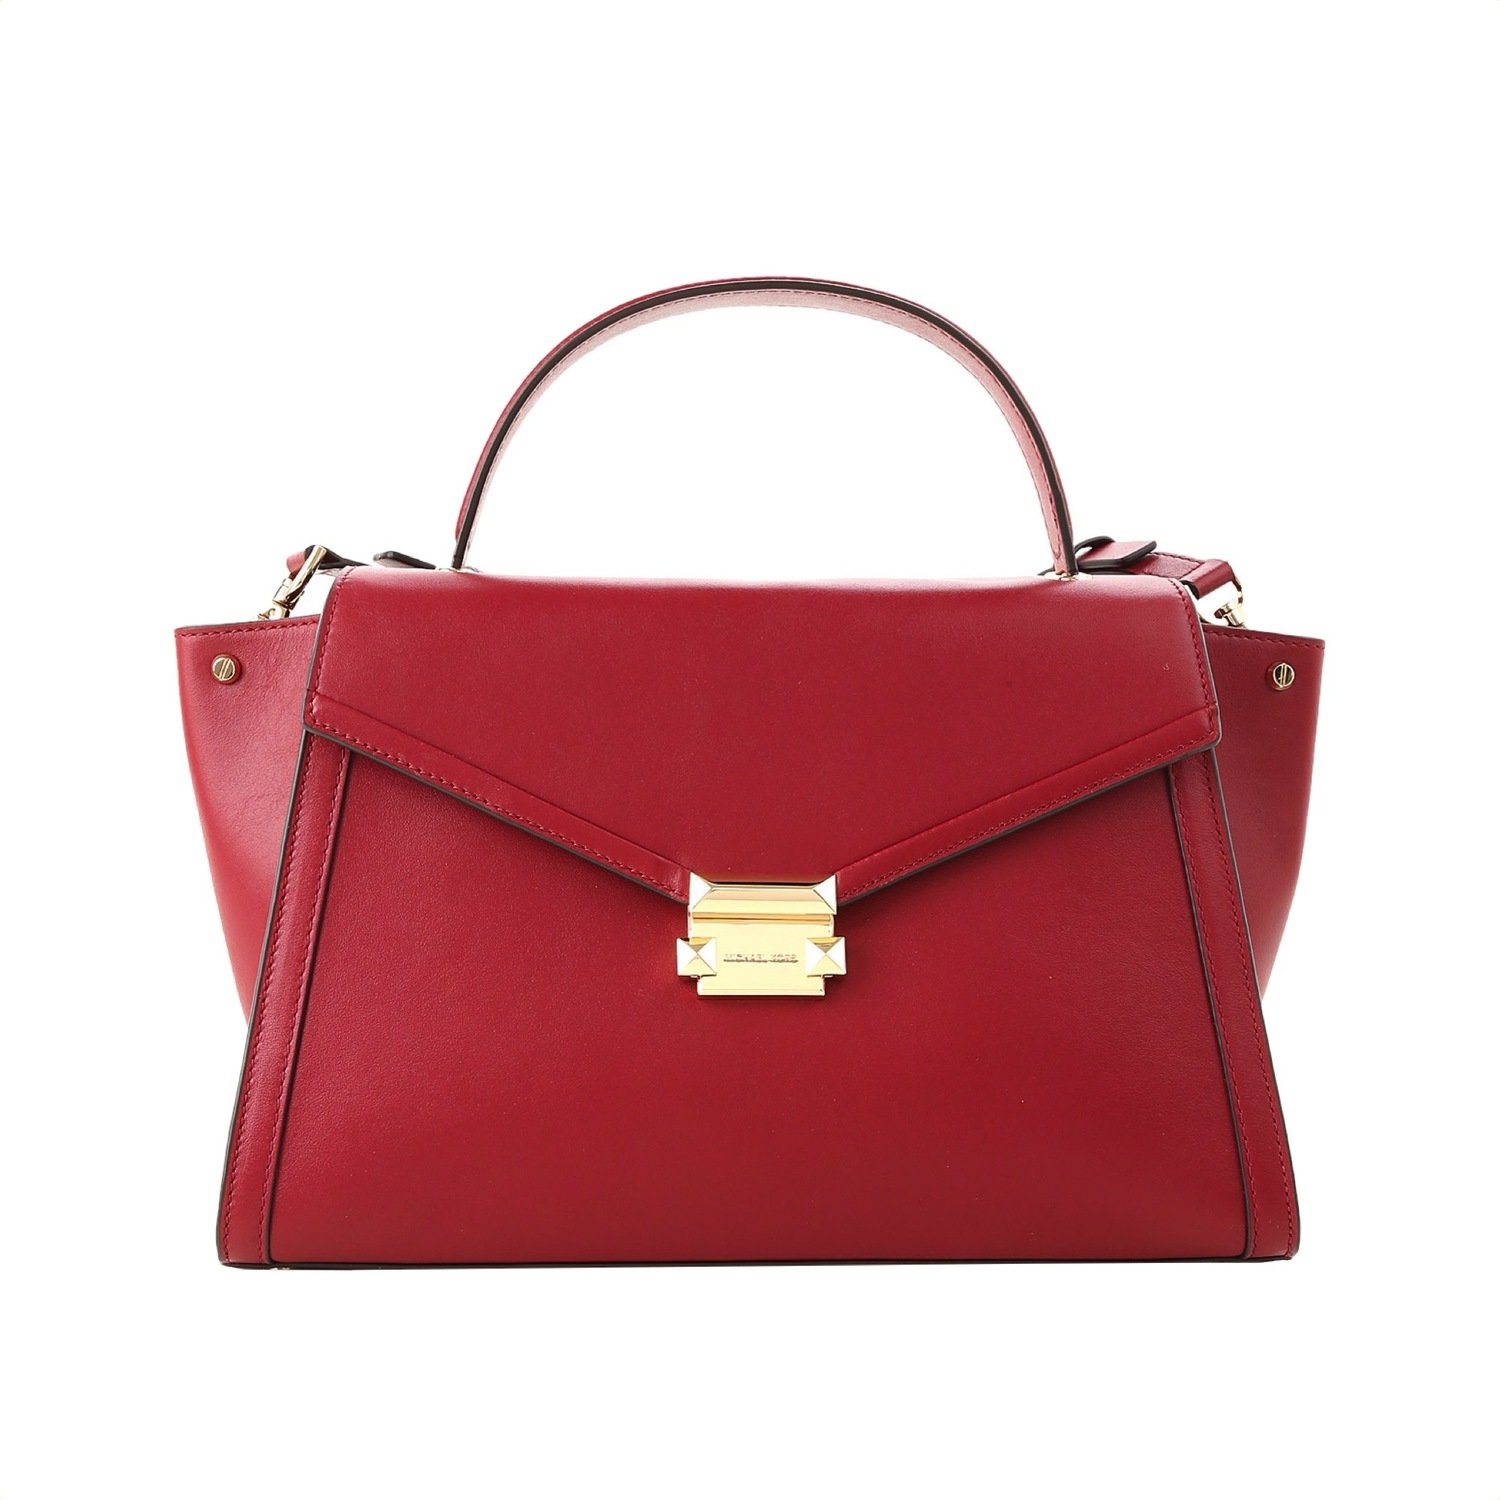 MICHAEL KORS - Whitney LG Top Handle Satchel - Maroon